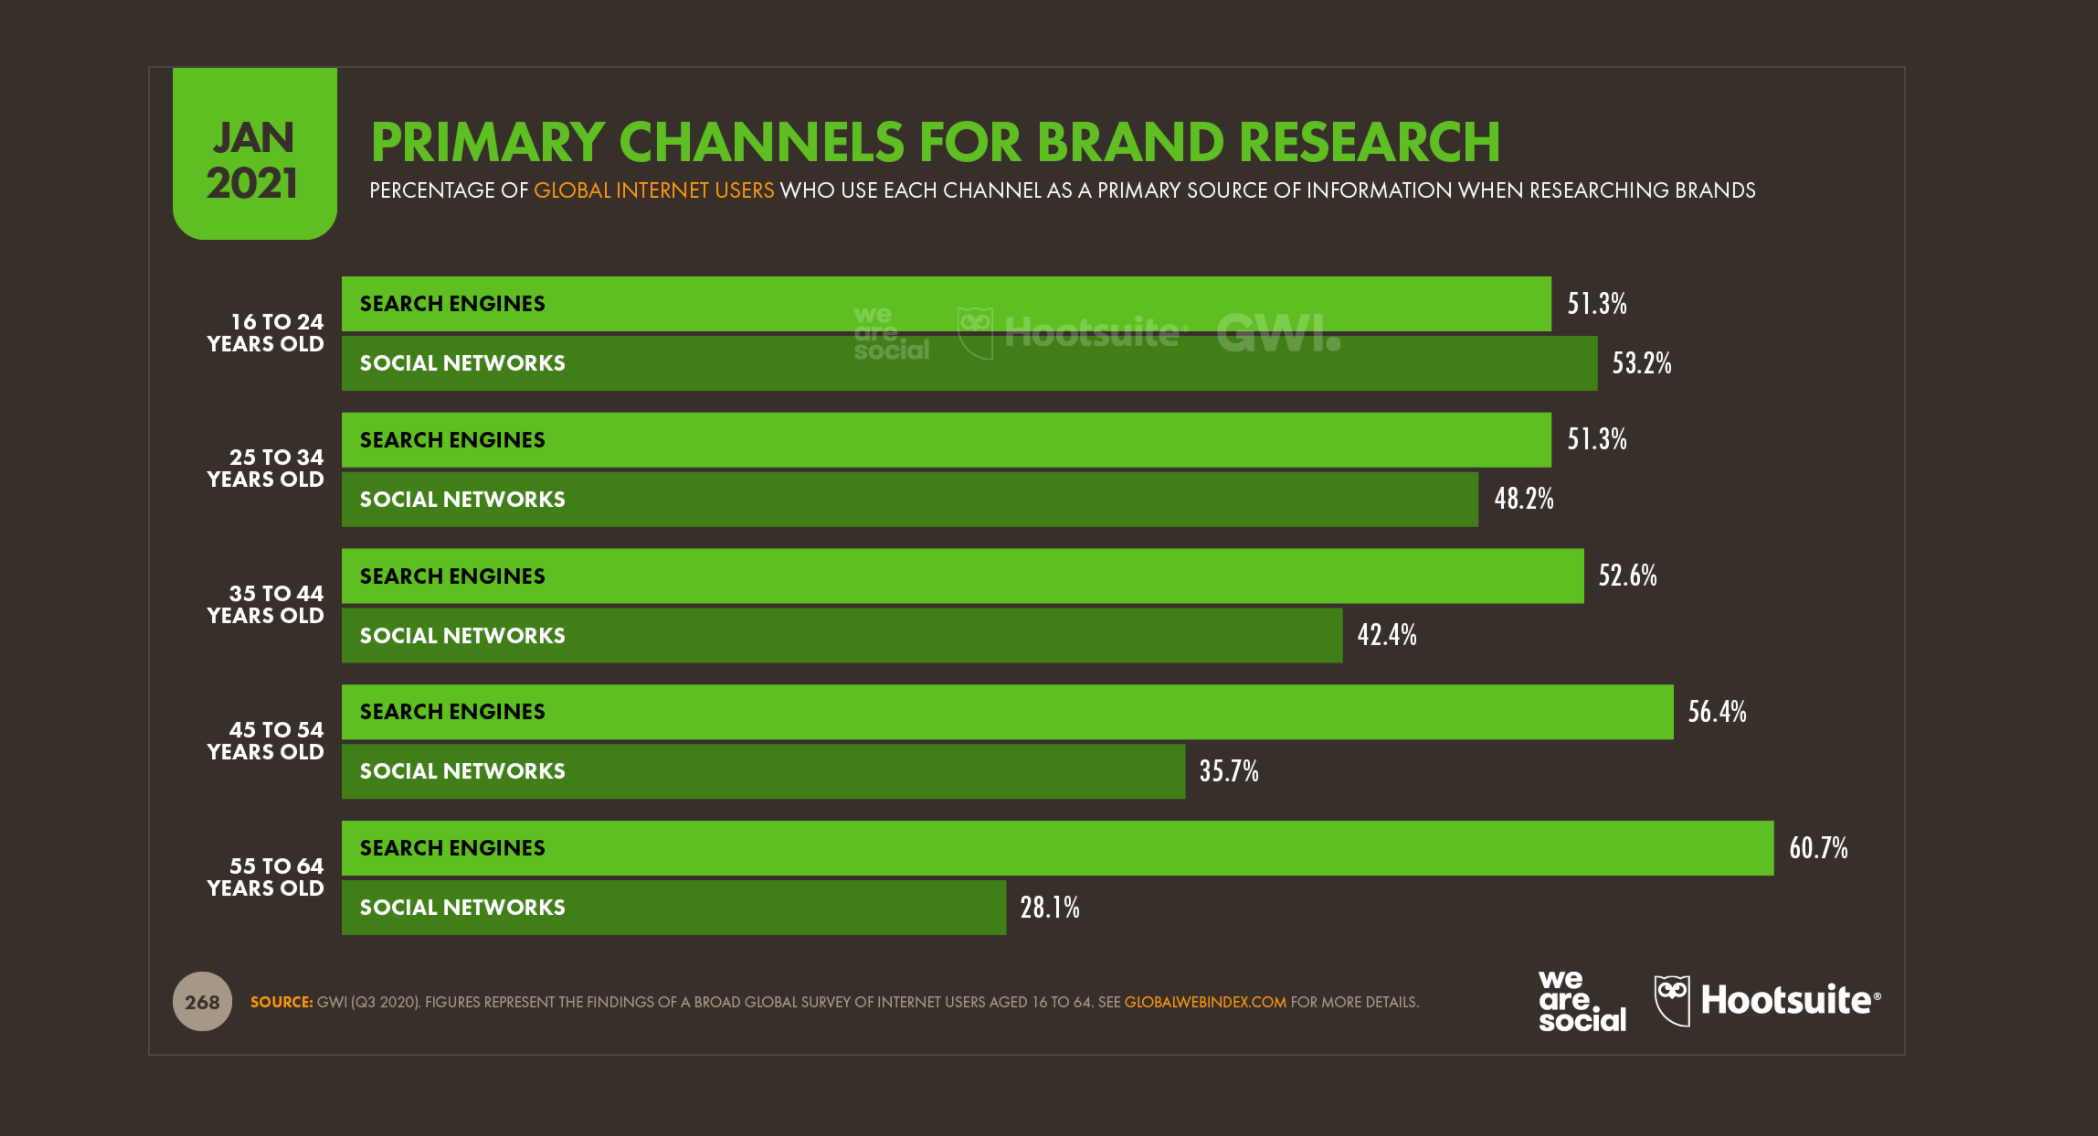 channels for brand search future eCommerce retail post pandemic